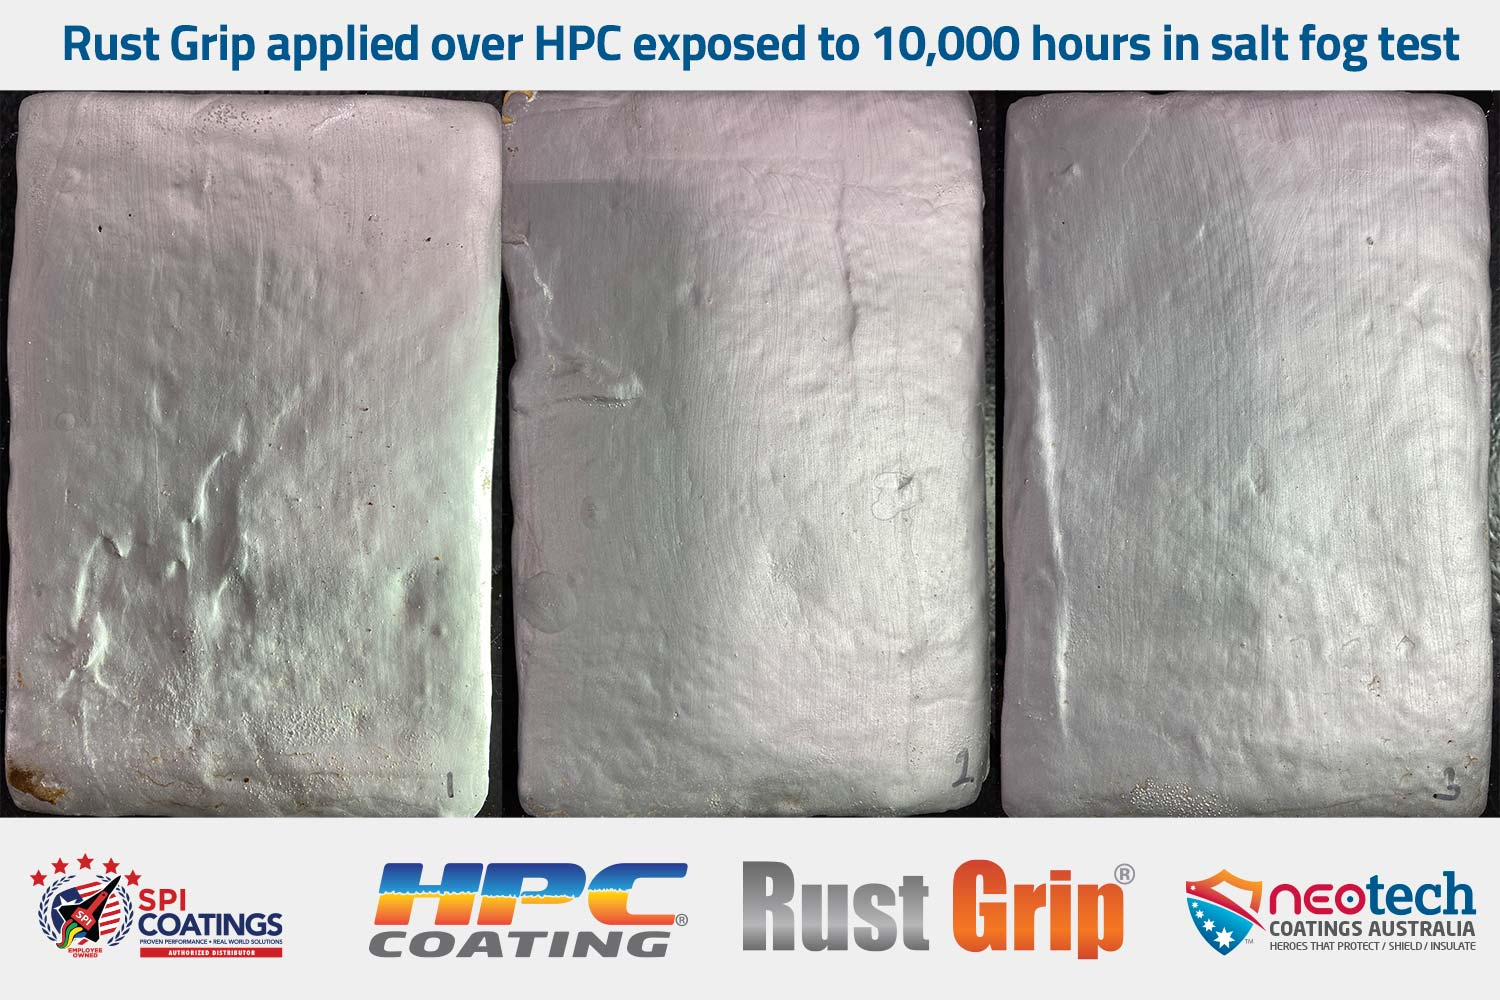 10,000 hour fog test for Rust Grip over HPC - NEOtech Coatings authorised SPI Coatings Distributor